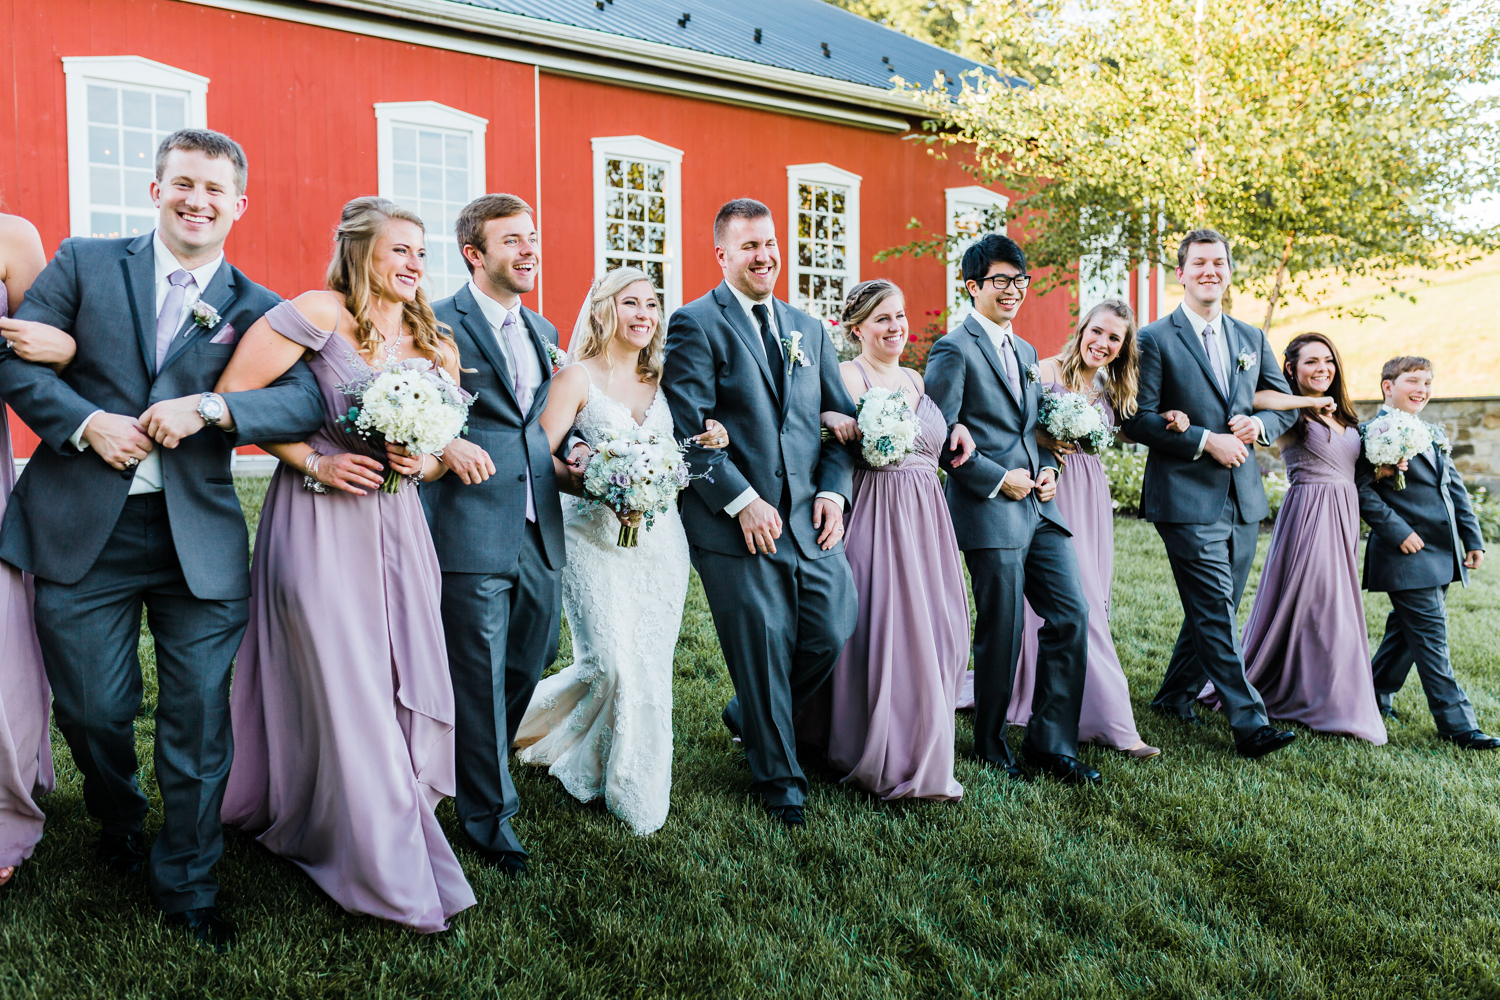 Bridal party walking with bride and groom - Rustic Maryland venue